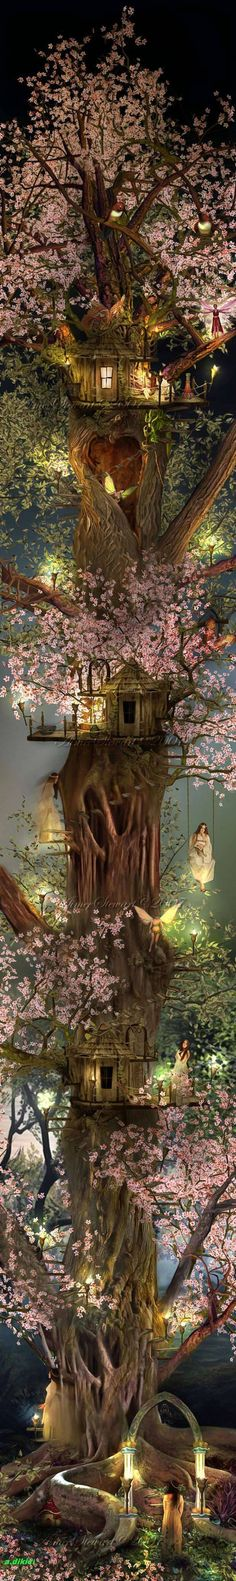 Fairy Dream House by Aimee Stewart http://foxfires.com/gallery.cfm